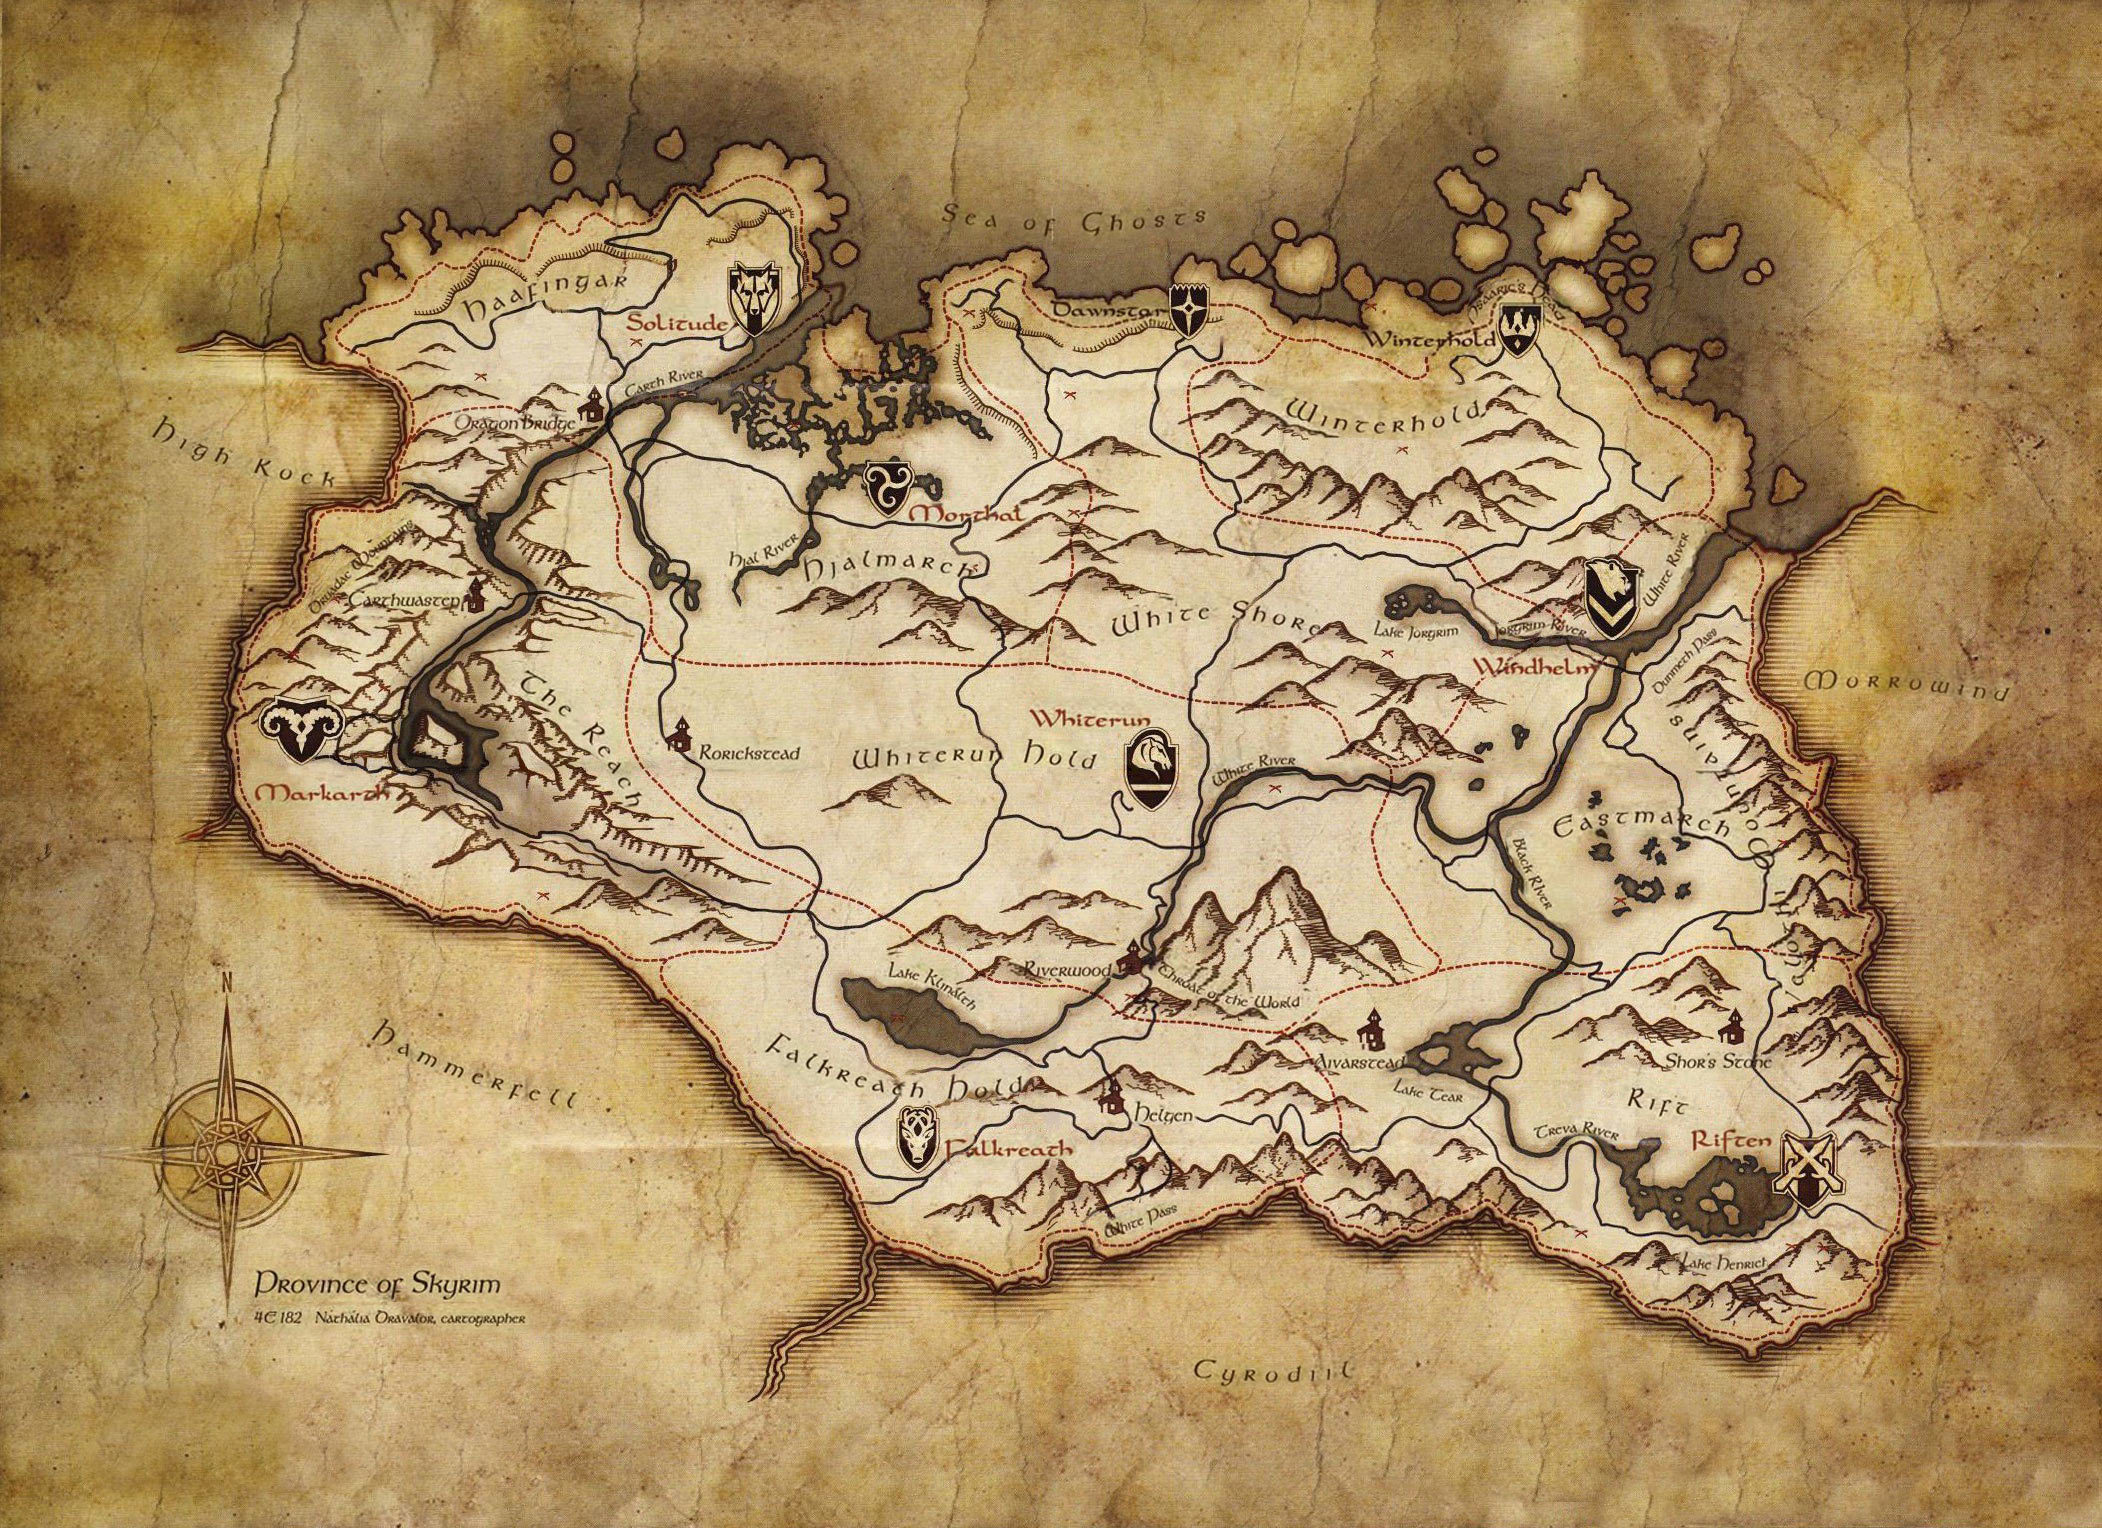 Wallpaper The Elder Scrolls V: Skyrim Province of Skyrim Map